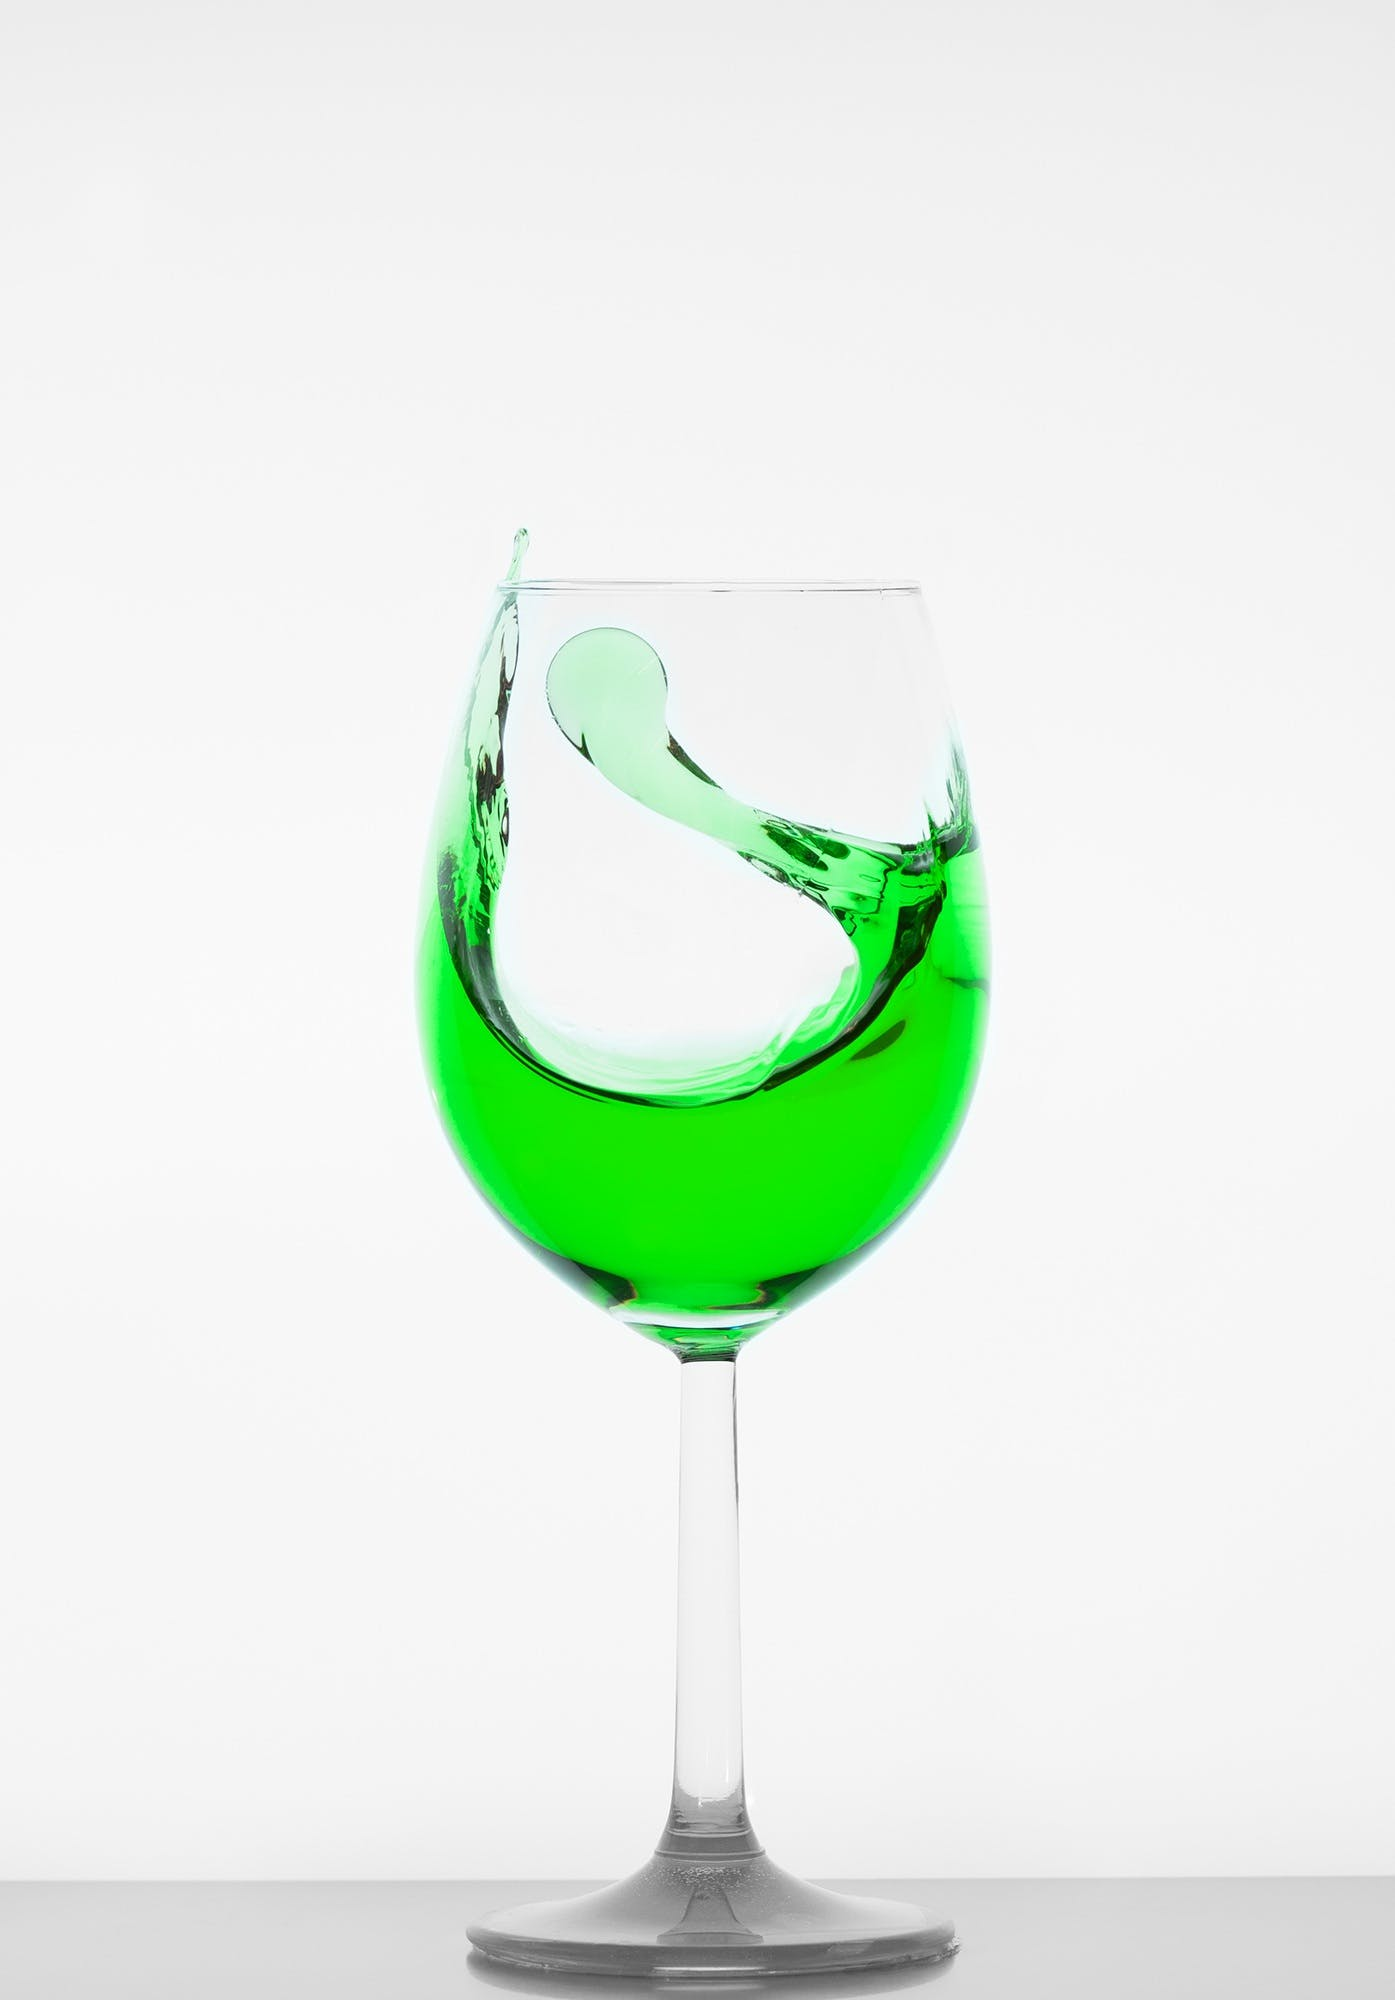 Free stock photo of wave, cocktail, glass, transparent